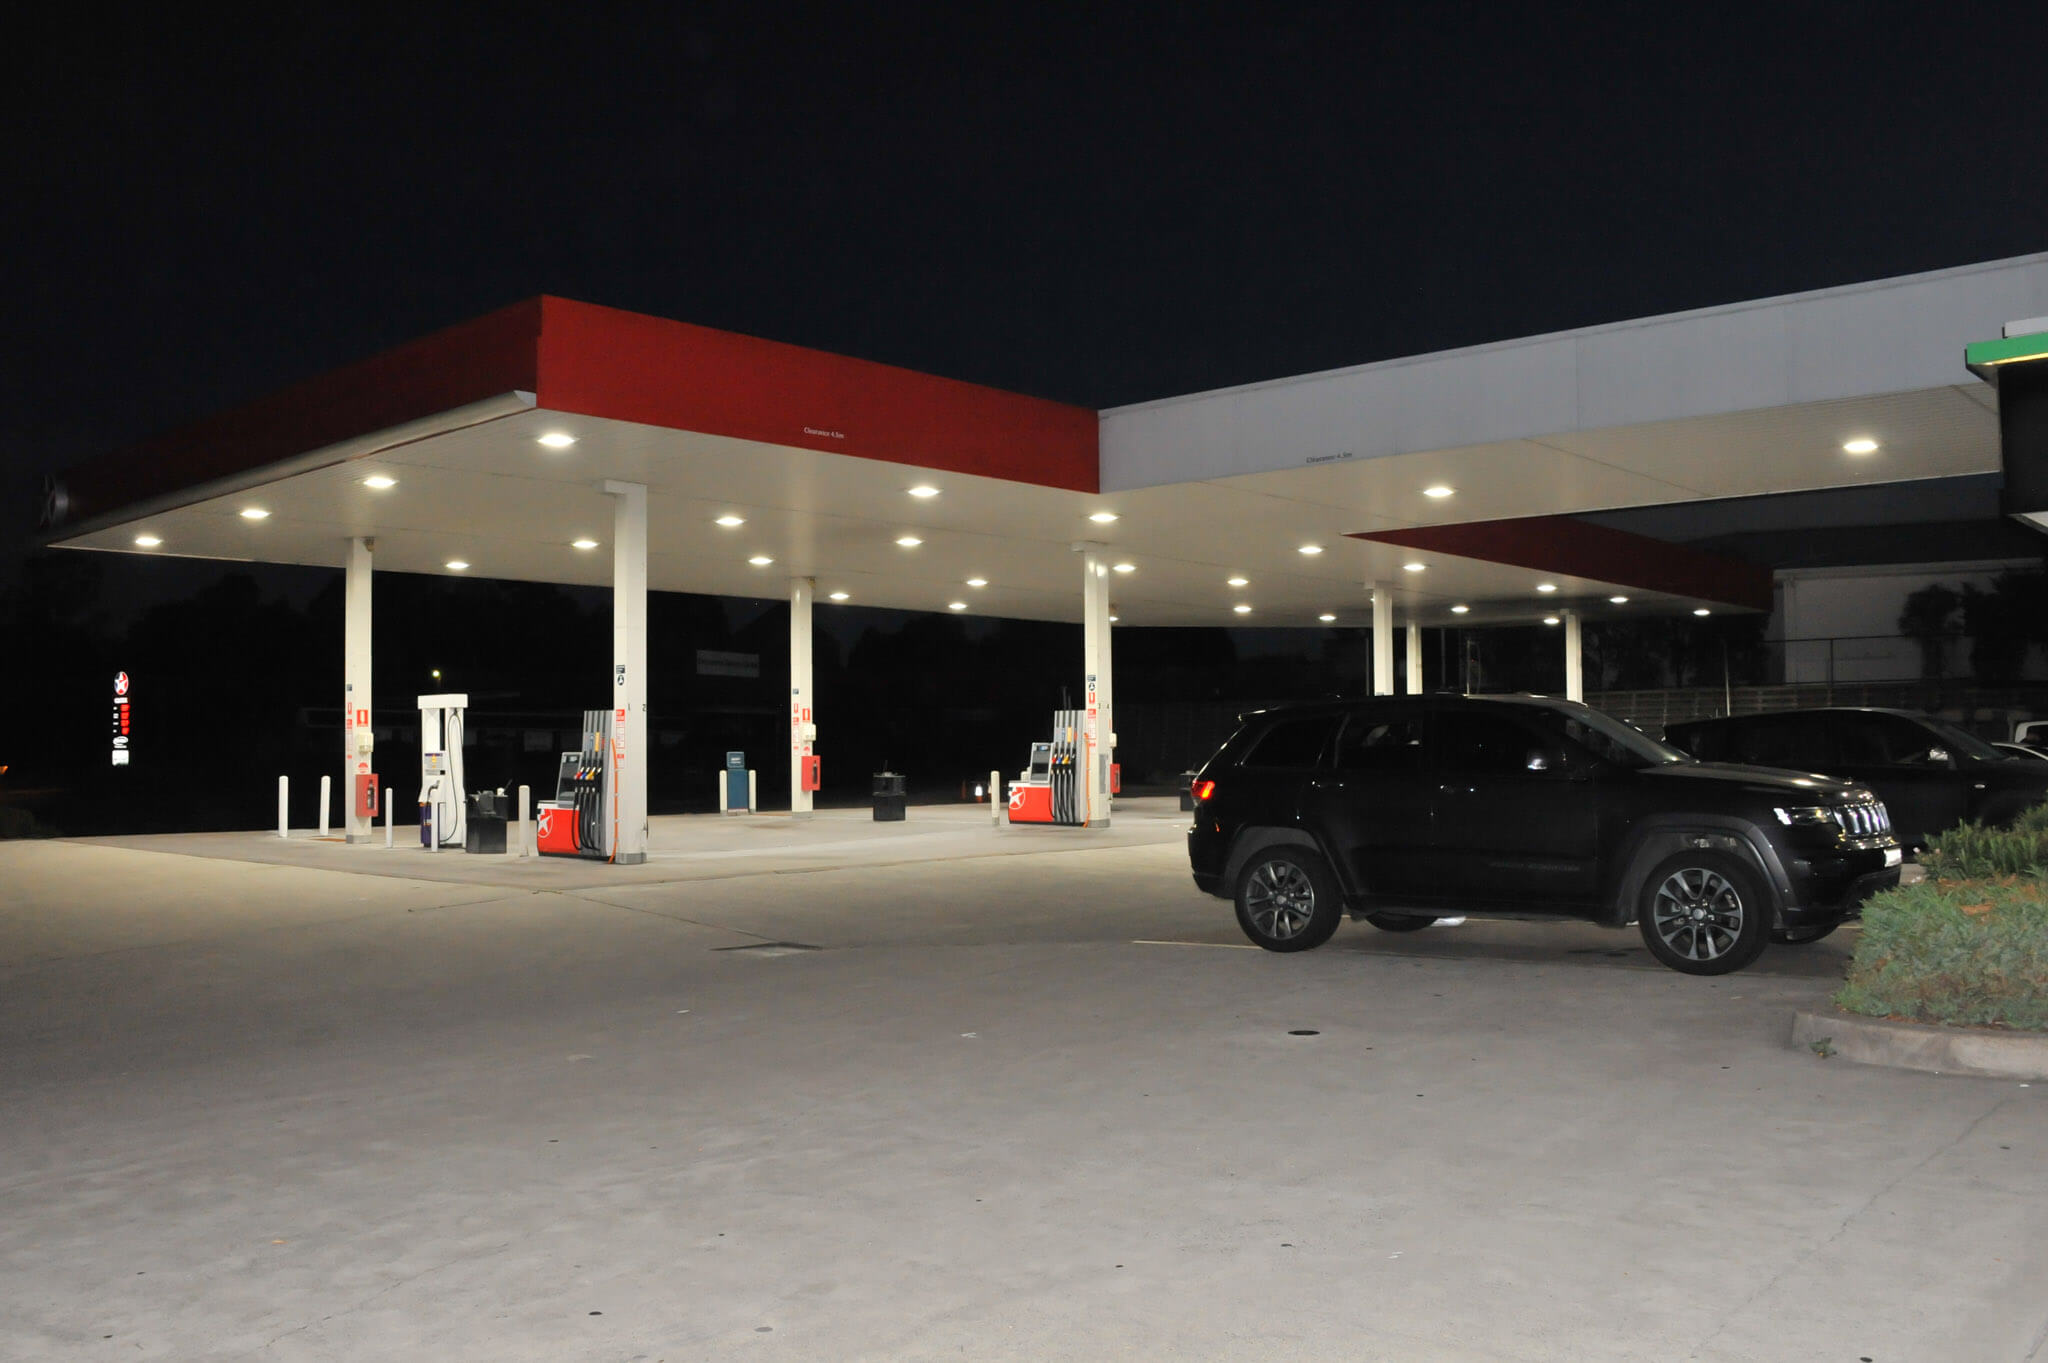 Caltex Service station outside